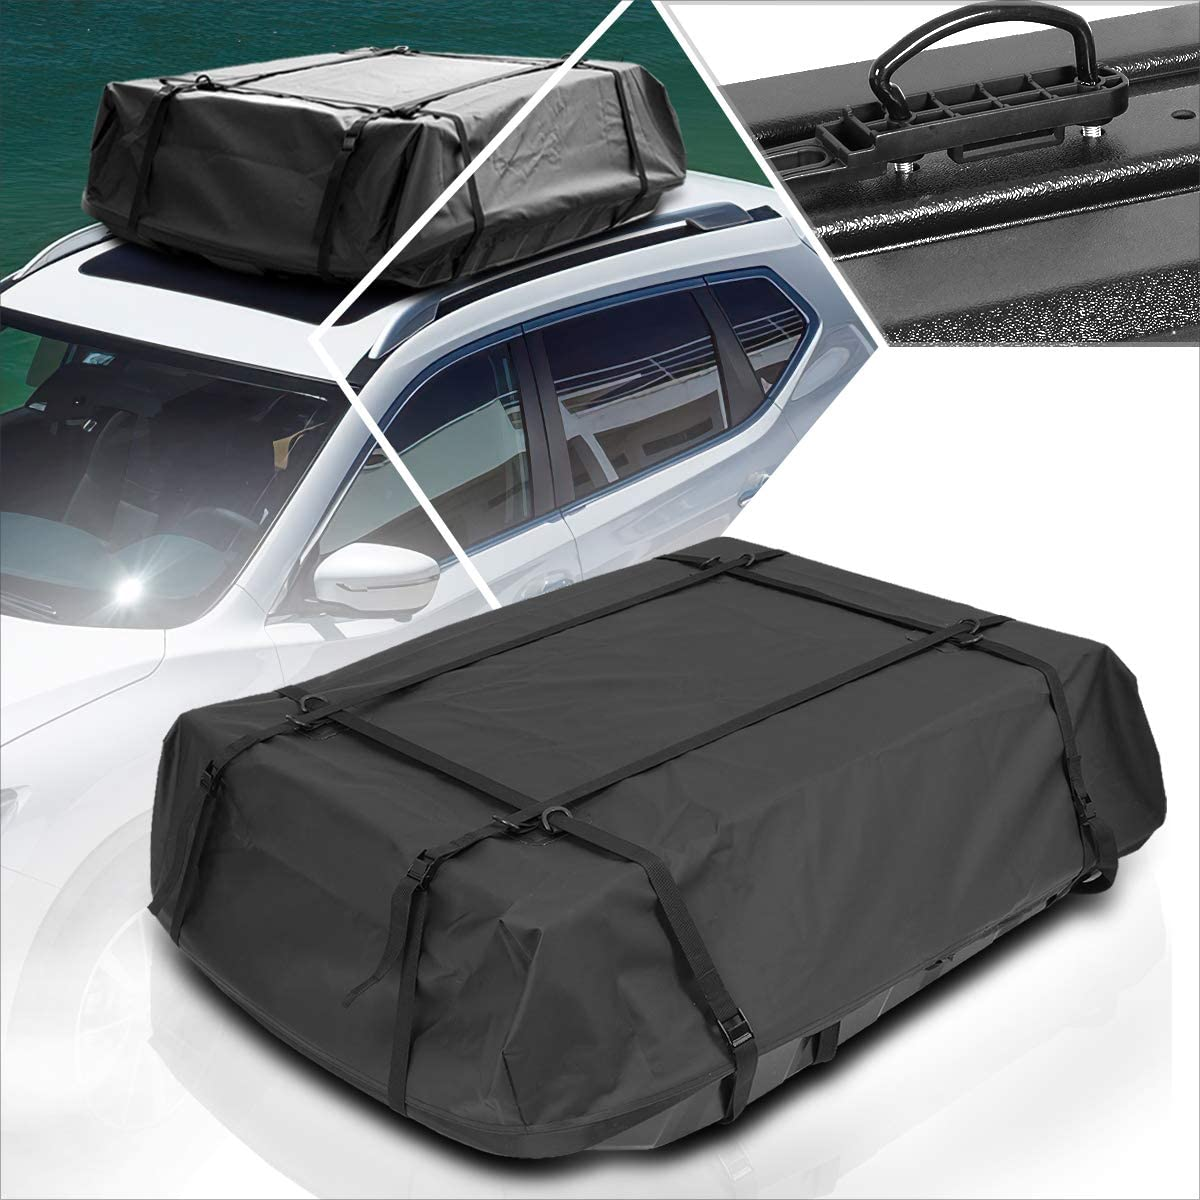 Max 66% OFF Car Directly managed store Roof Black Cargo Carrier Soft Waterproof Top D Bag Rainproof